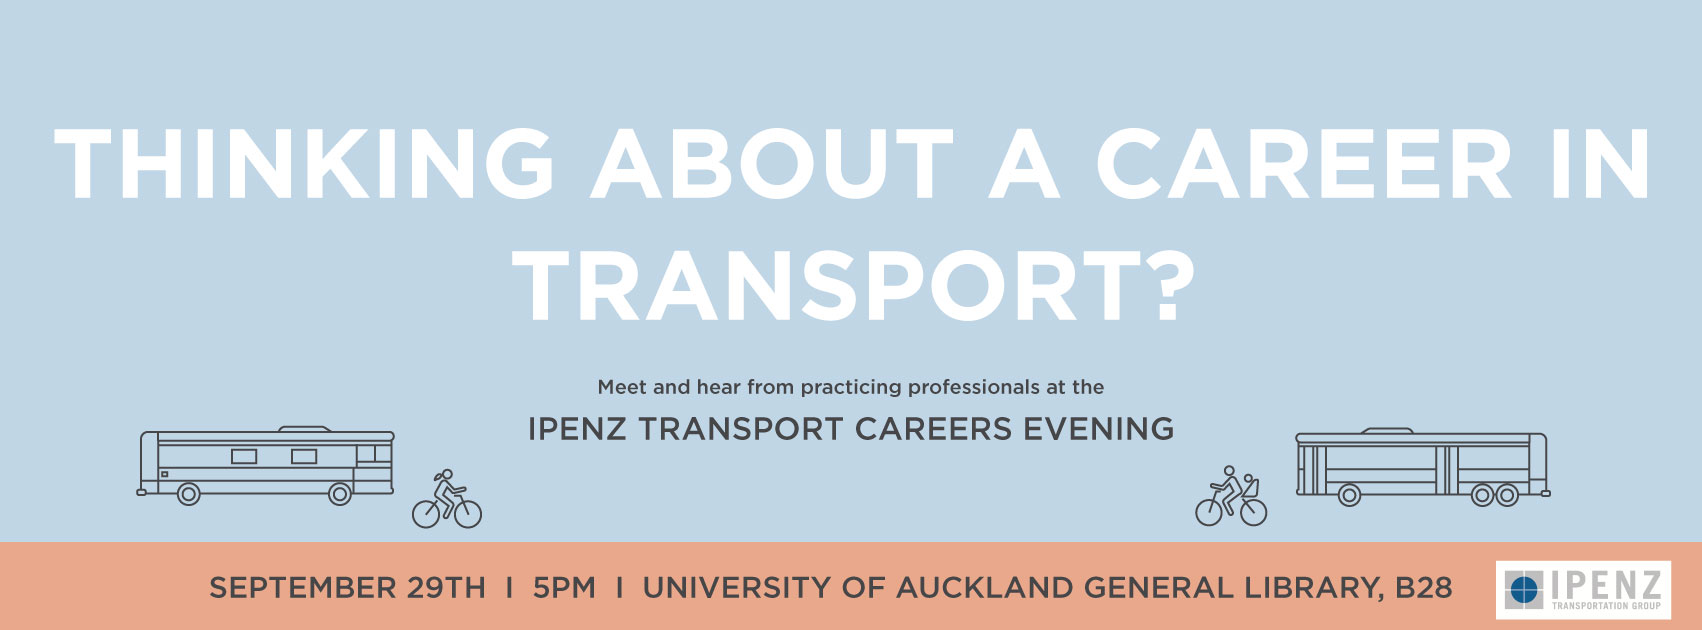 IPENZ-Careers-Evening.jpg